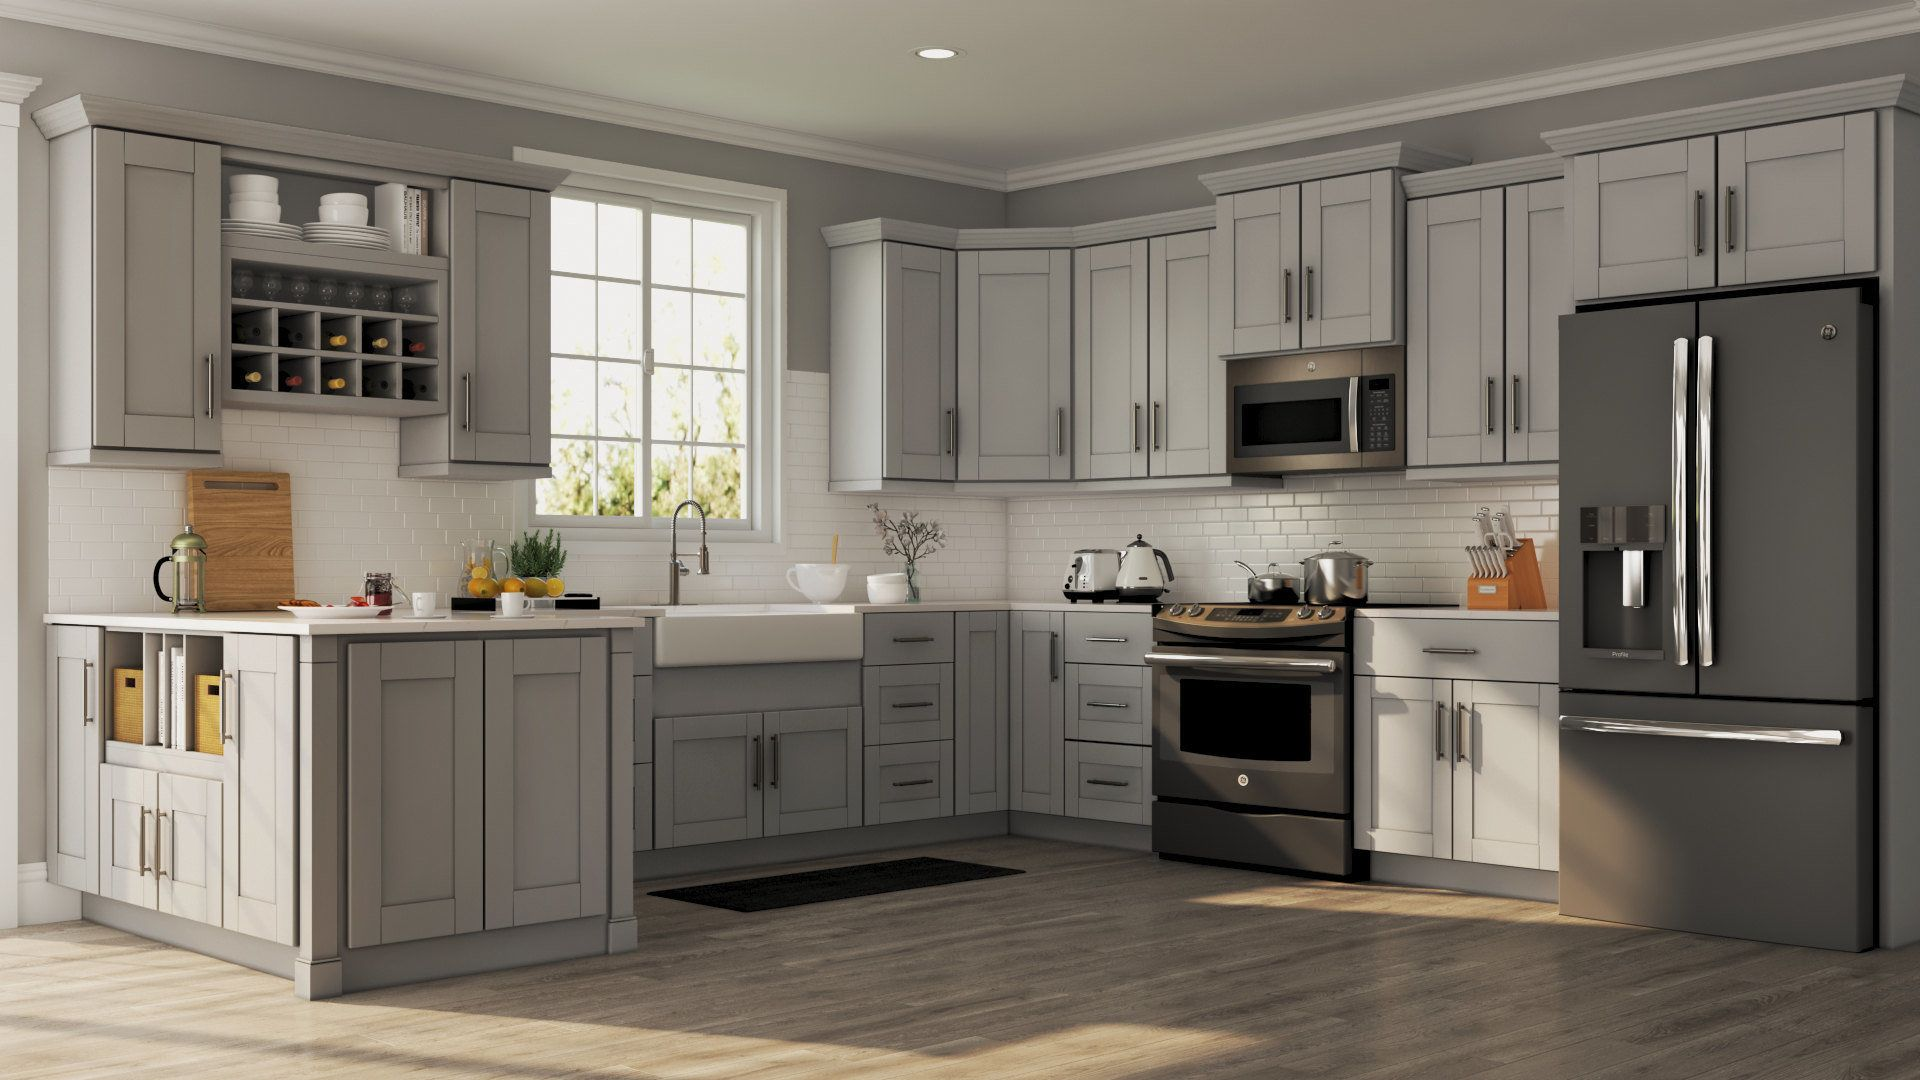 Shop Our Kitchen Cabinets Department To Customize Your Shaker Wall Cabinets In Dove Gray Home Depot Kitchen Kitchen Cabinets Home Depot Kitchen Cabinet Design